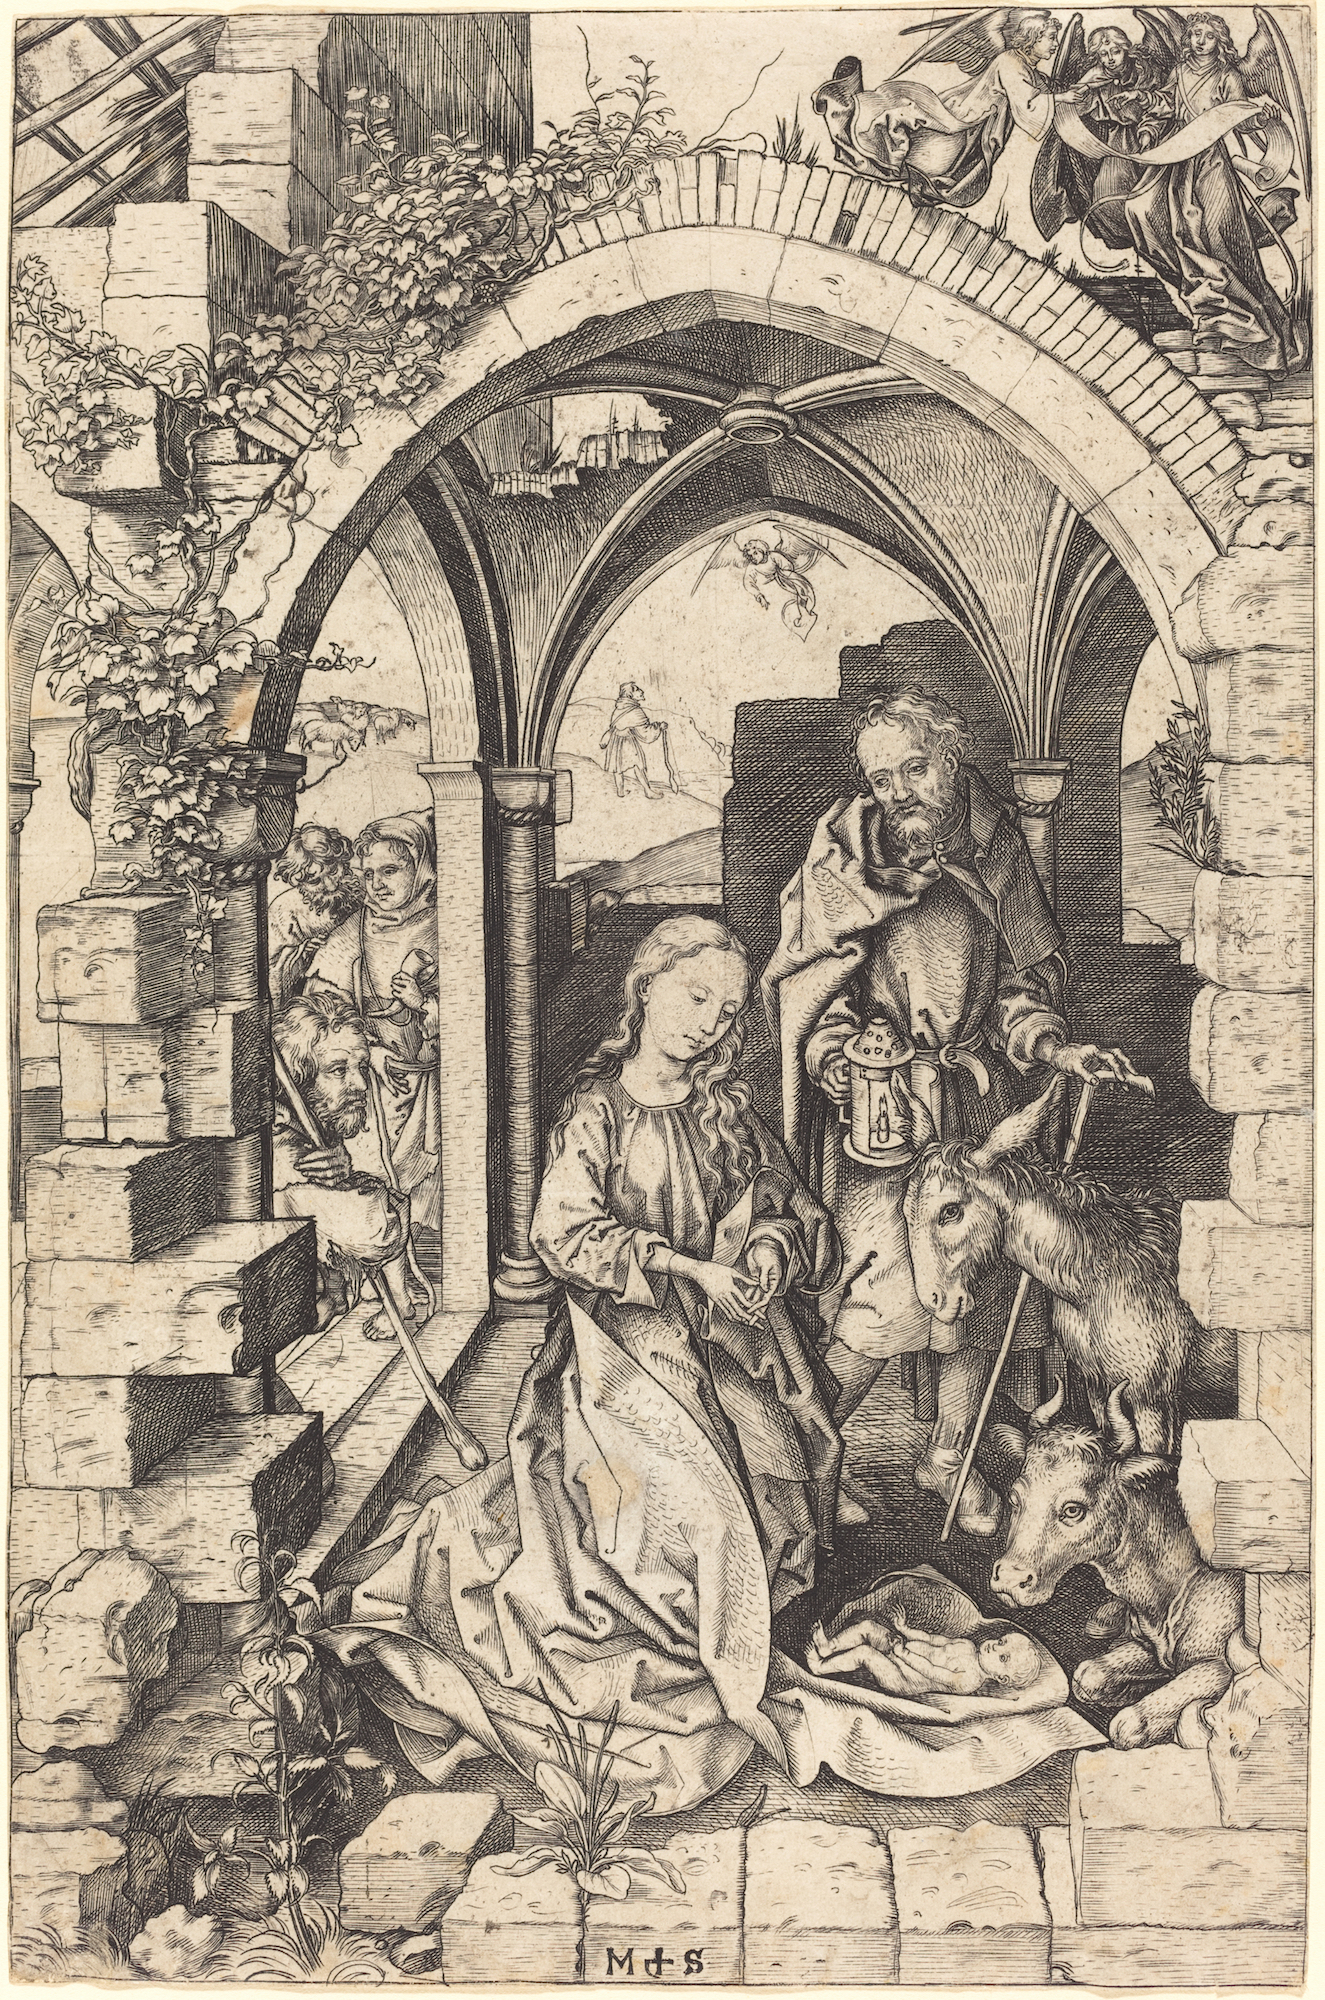 Martin Schongauer (German, c. 1450–91),  The Nativity . From the collection of the National Gallery of Art, Washington.